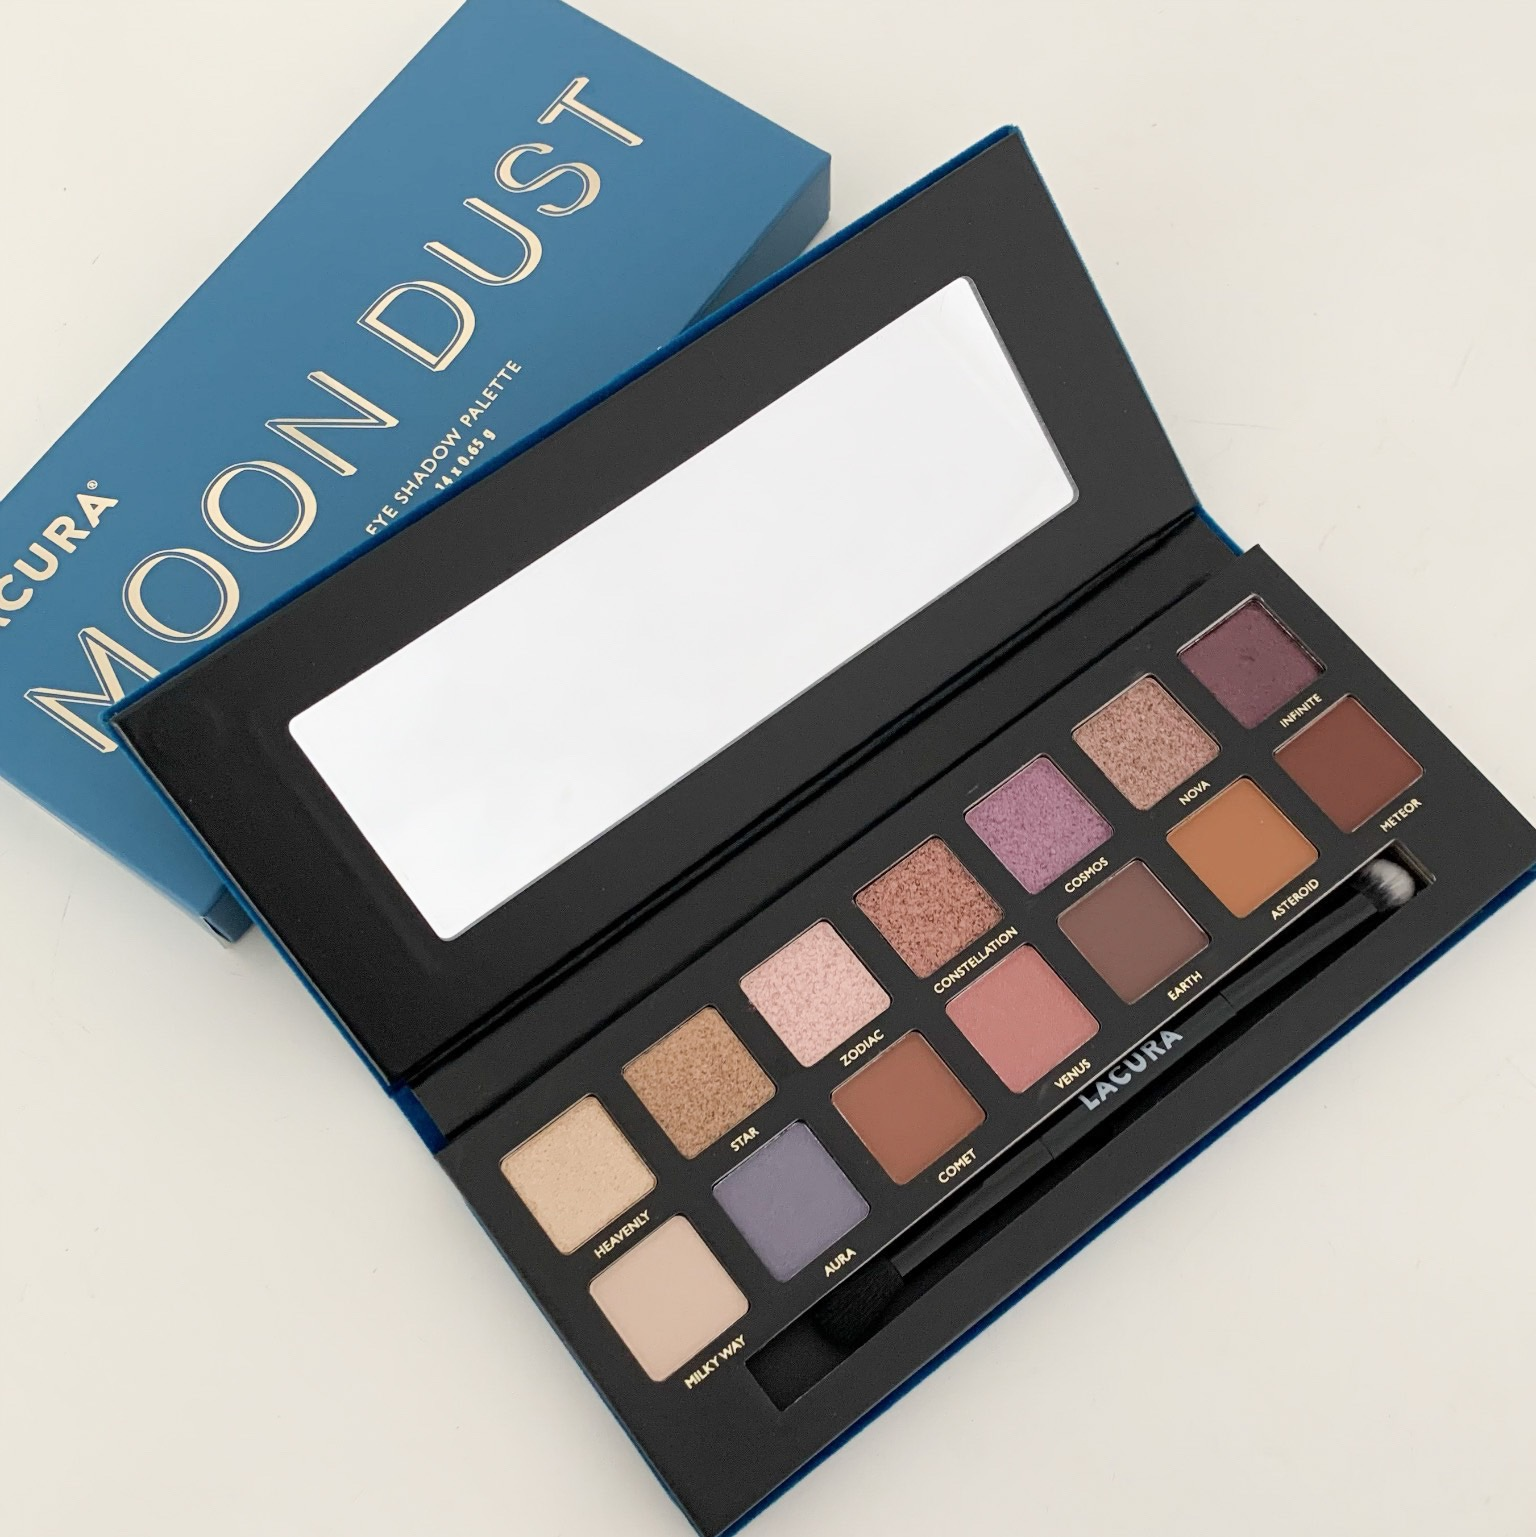 lacura moon dust eyeshadow palette open showing the colours of the pans